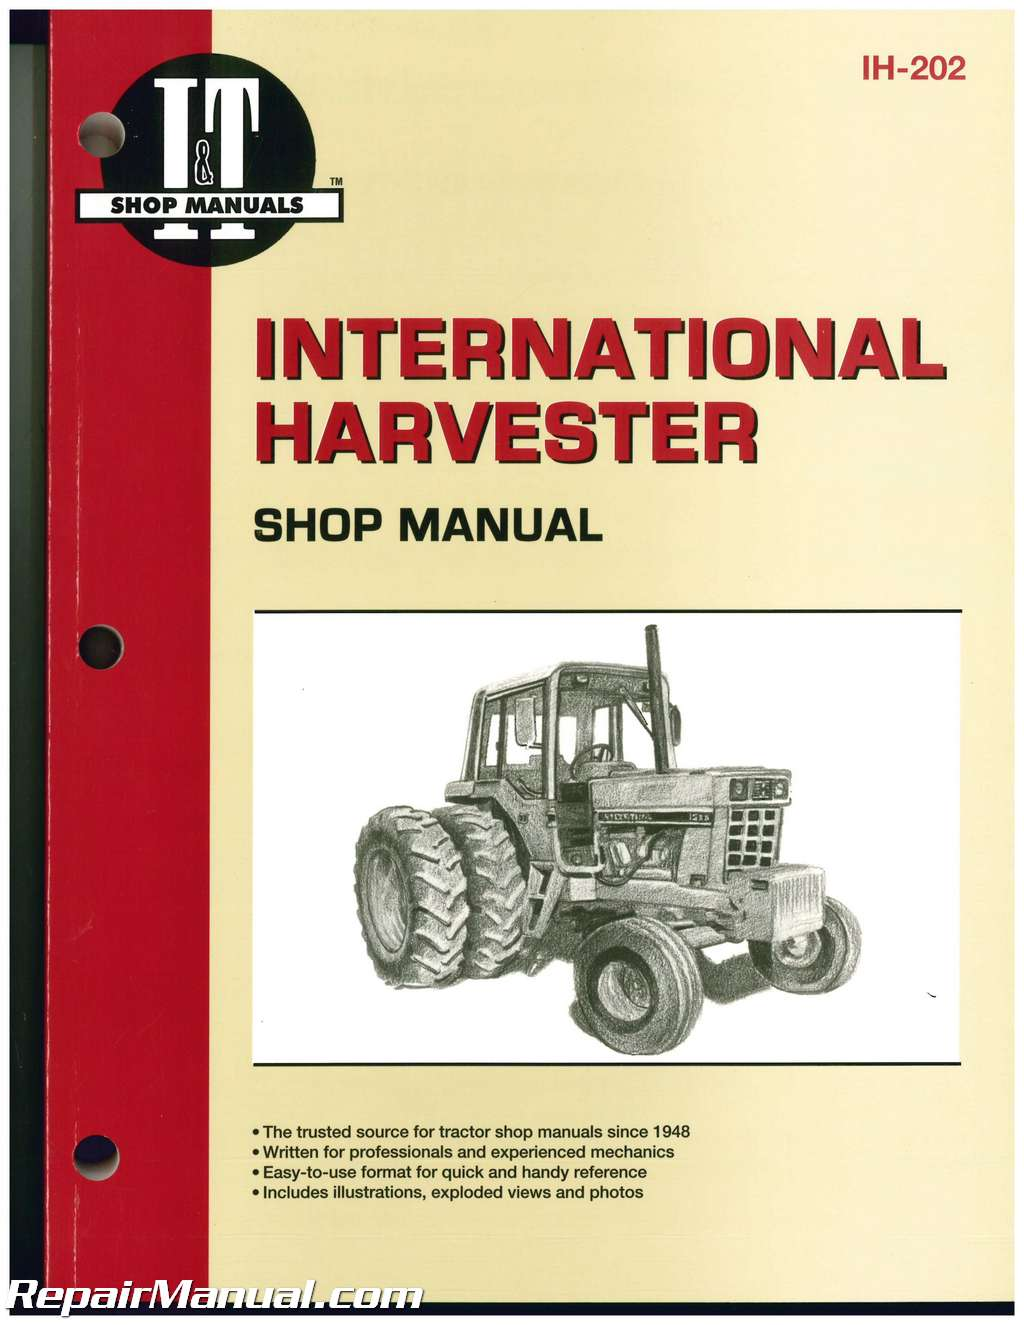 International Harvester Farmall 544 656 666 686 Hydro 70 Hydro 86 Hydro 100  Hydro 186 1466 1468 1486 1566 1568 1586 684 784 884 Hydro 84 Service Manual